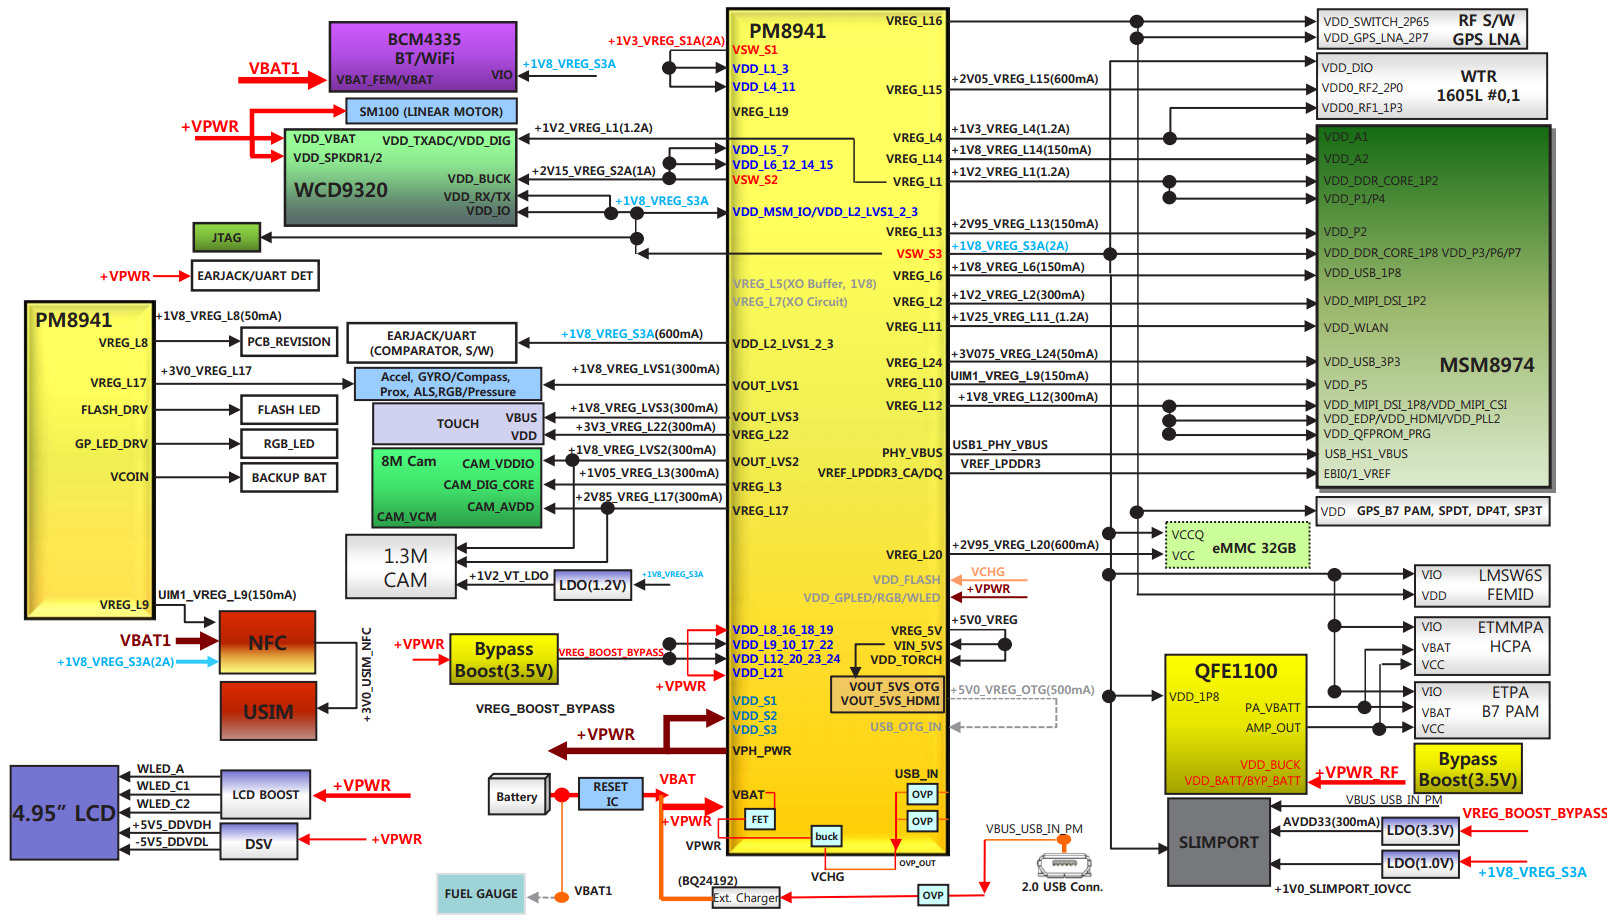 nexus 5 schematic the wiring diagram nexus 5 schematic vidim wiring diagram schematic